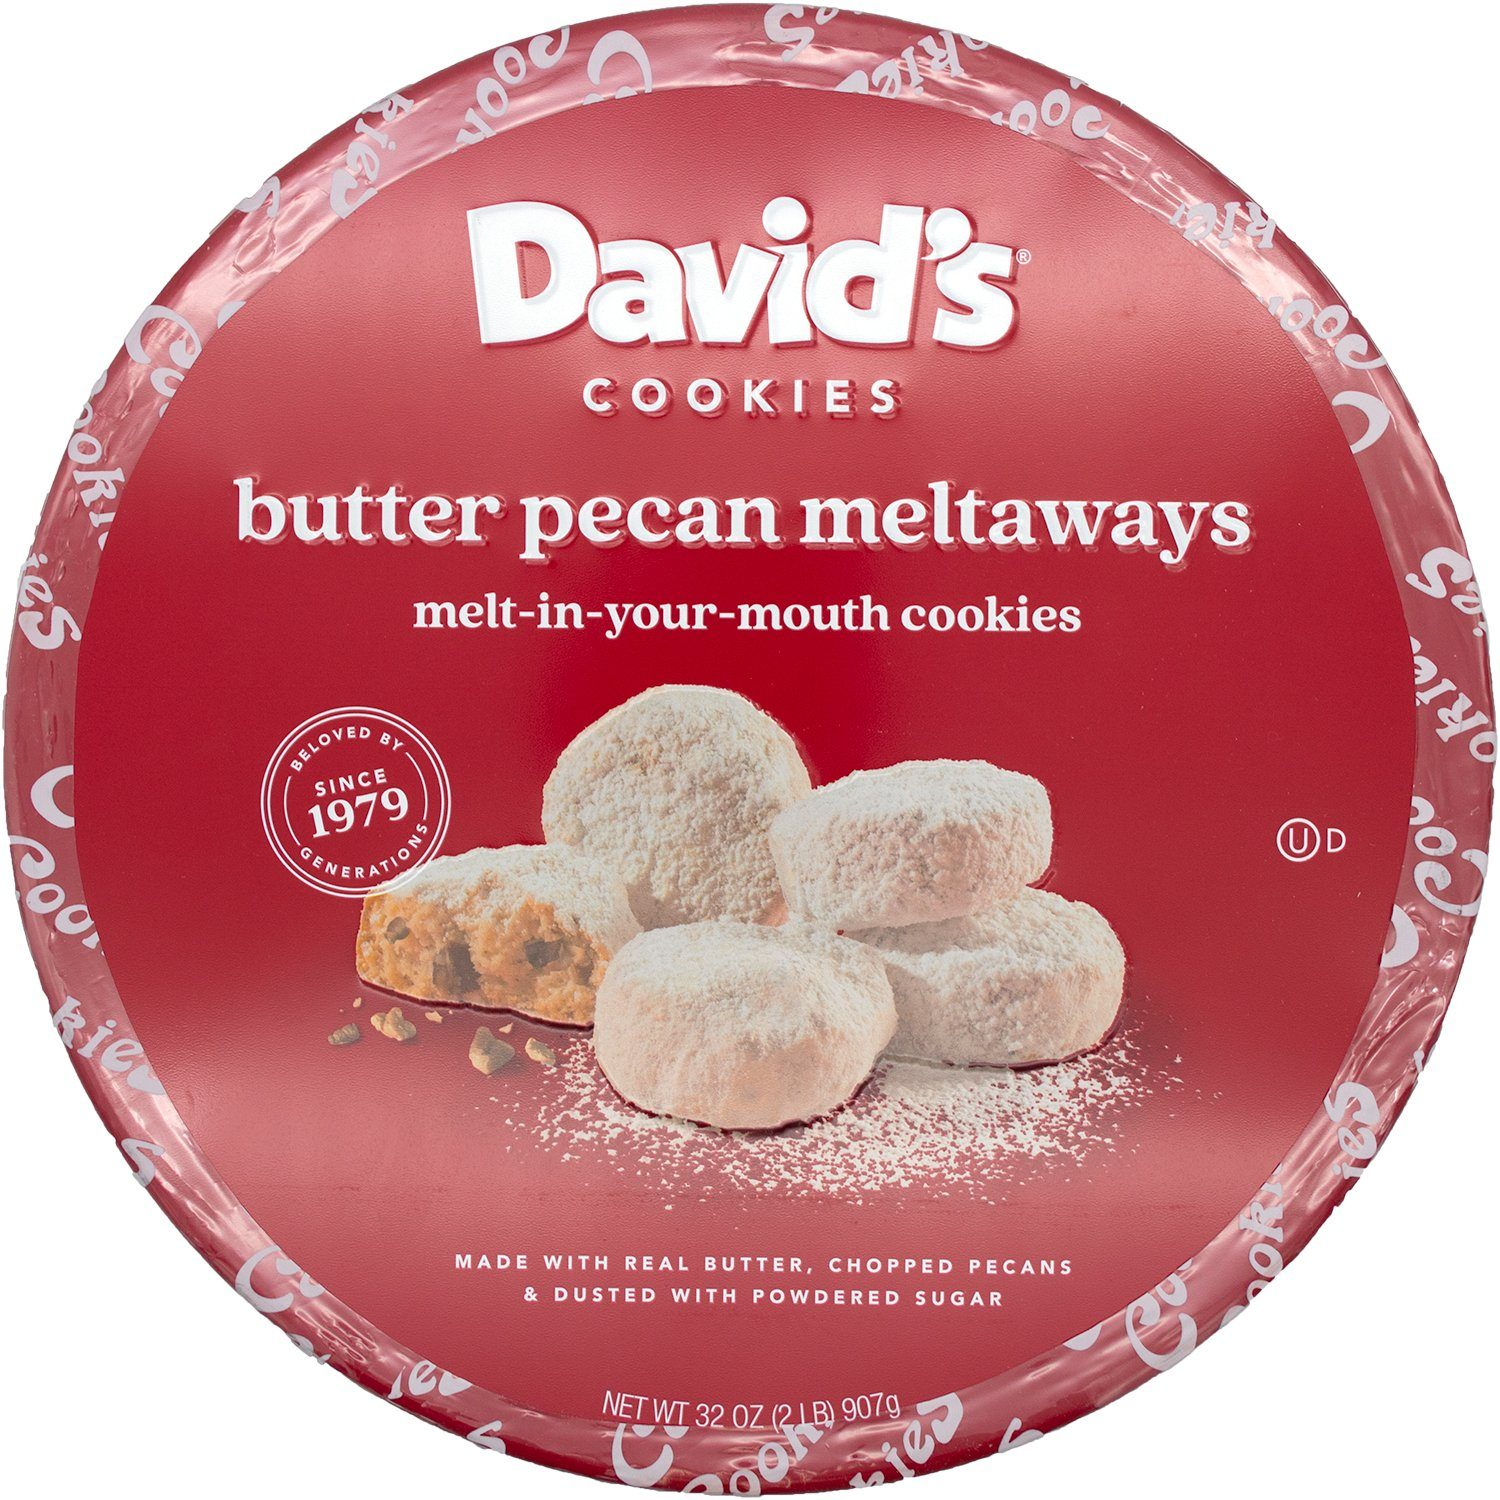 David's Cookies Butter Pecan Meltaways David's Cookies 32 Ounce